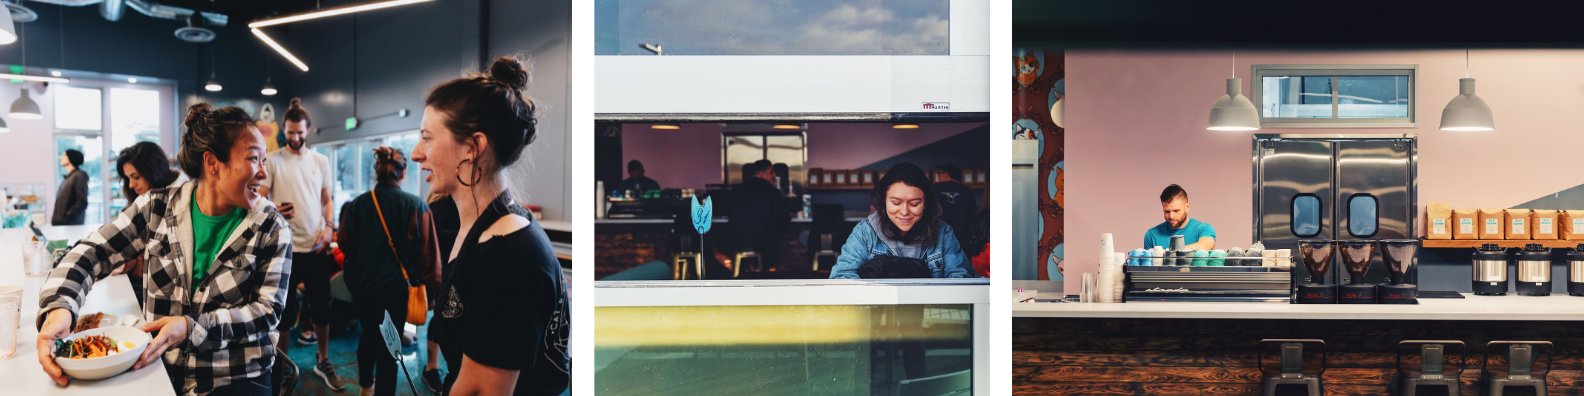 photos of two cat & cloud employees smiling with food from the kitchen, a guest working at her computer near the open-air roll up window with coffee, and baristas working behind the espresso bar